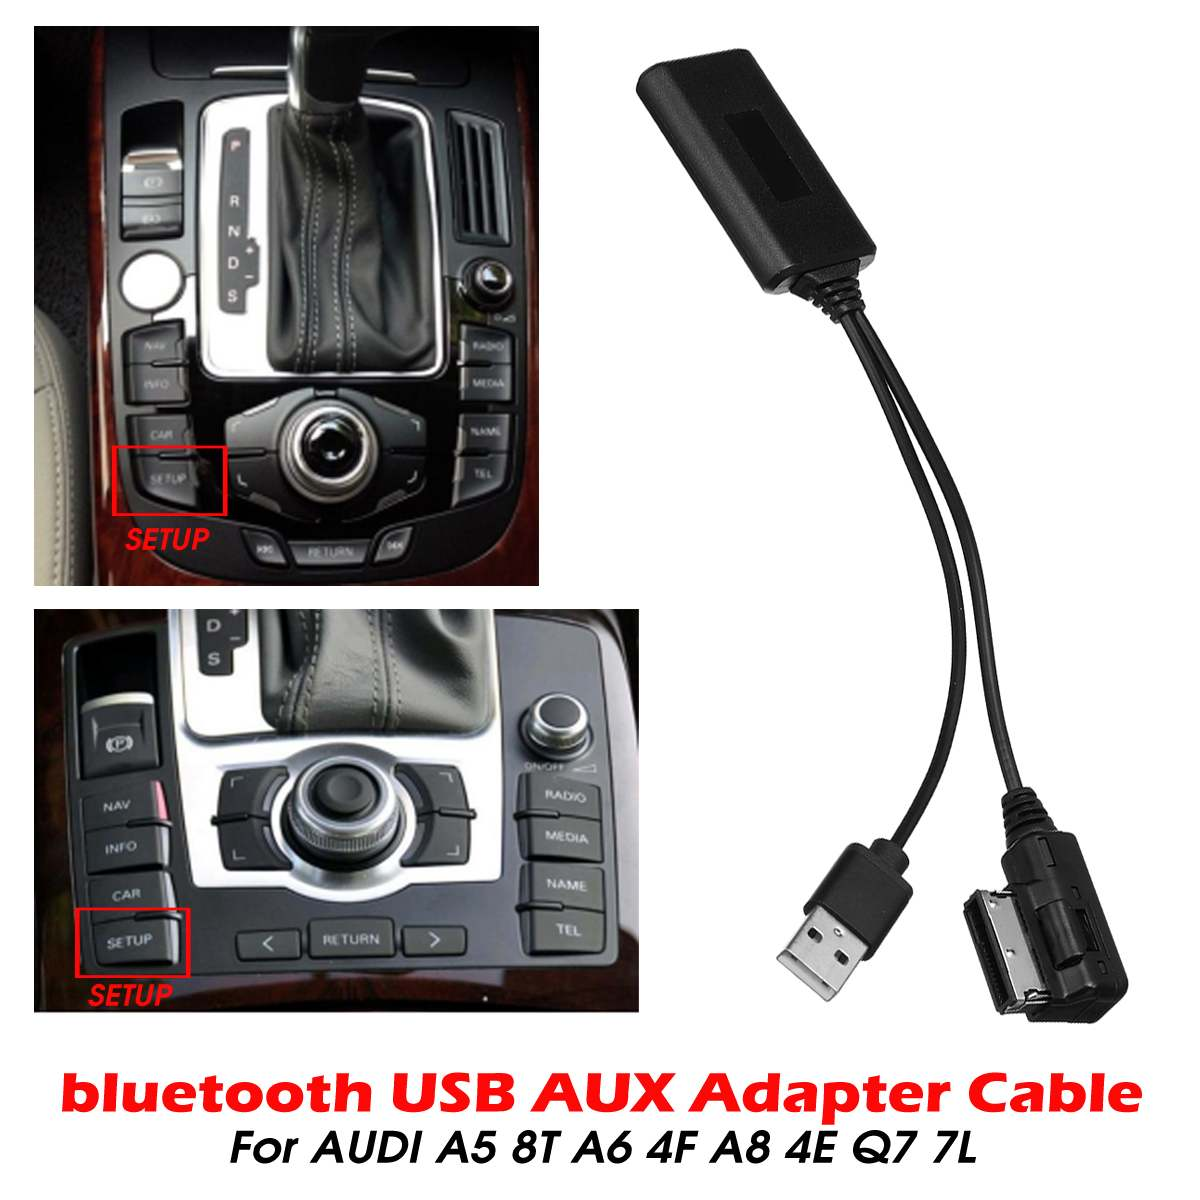 Mini Wireless Bluetooth USB AUX In Adapter Cable Music Audio Receiver Adapter For AUDI A5 8T A6 4F A8 4E Q7 7L For AMI MMI 2G